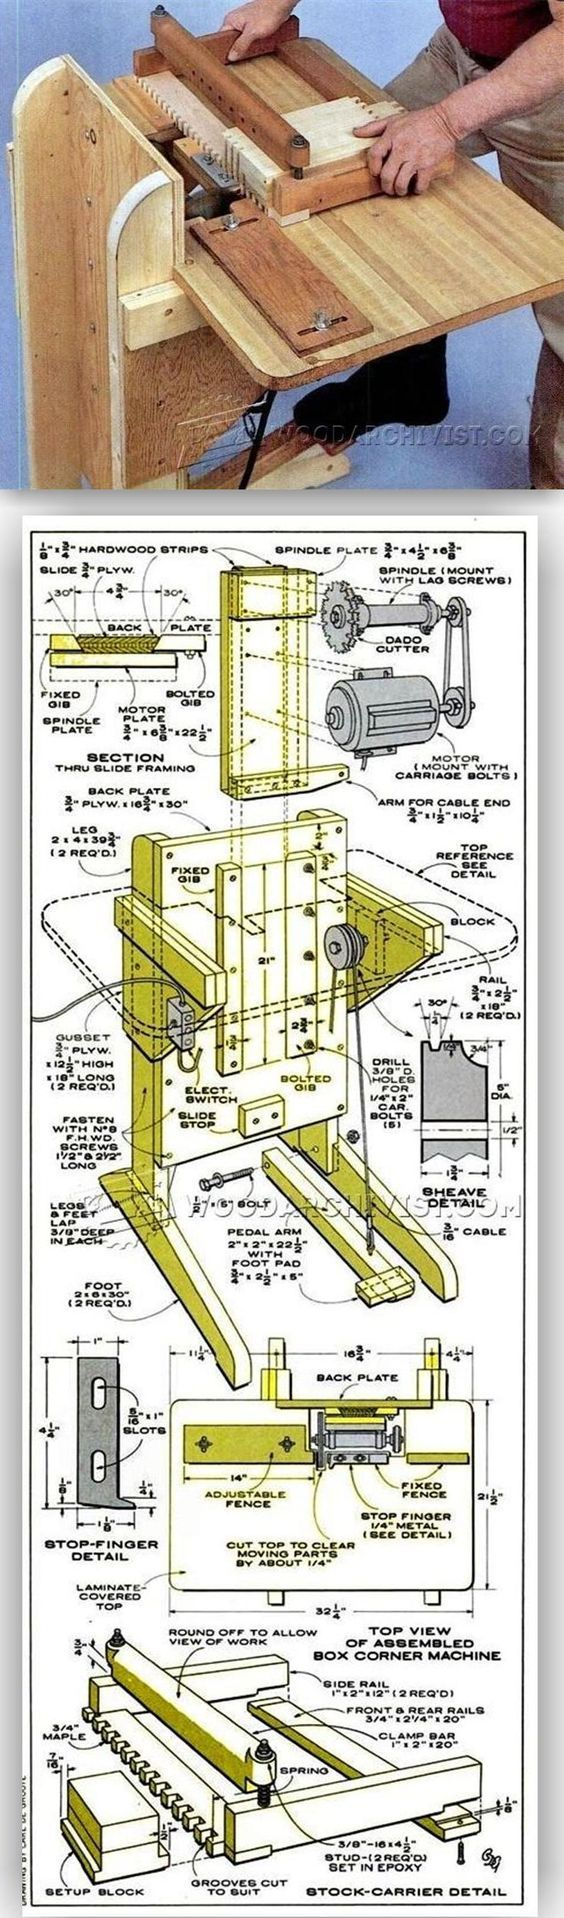 DIY Finger Joint Machine - Joinery Tips, Jigs and Techniques | WoodArchivist.com